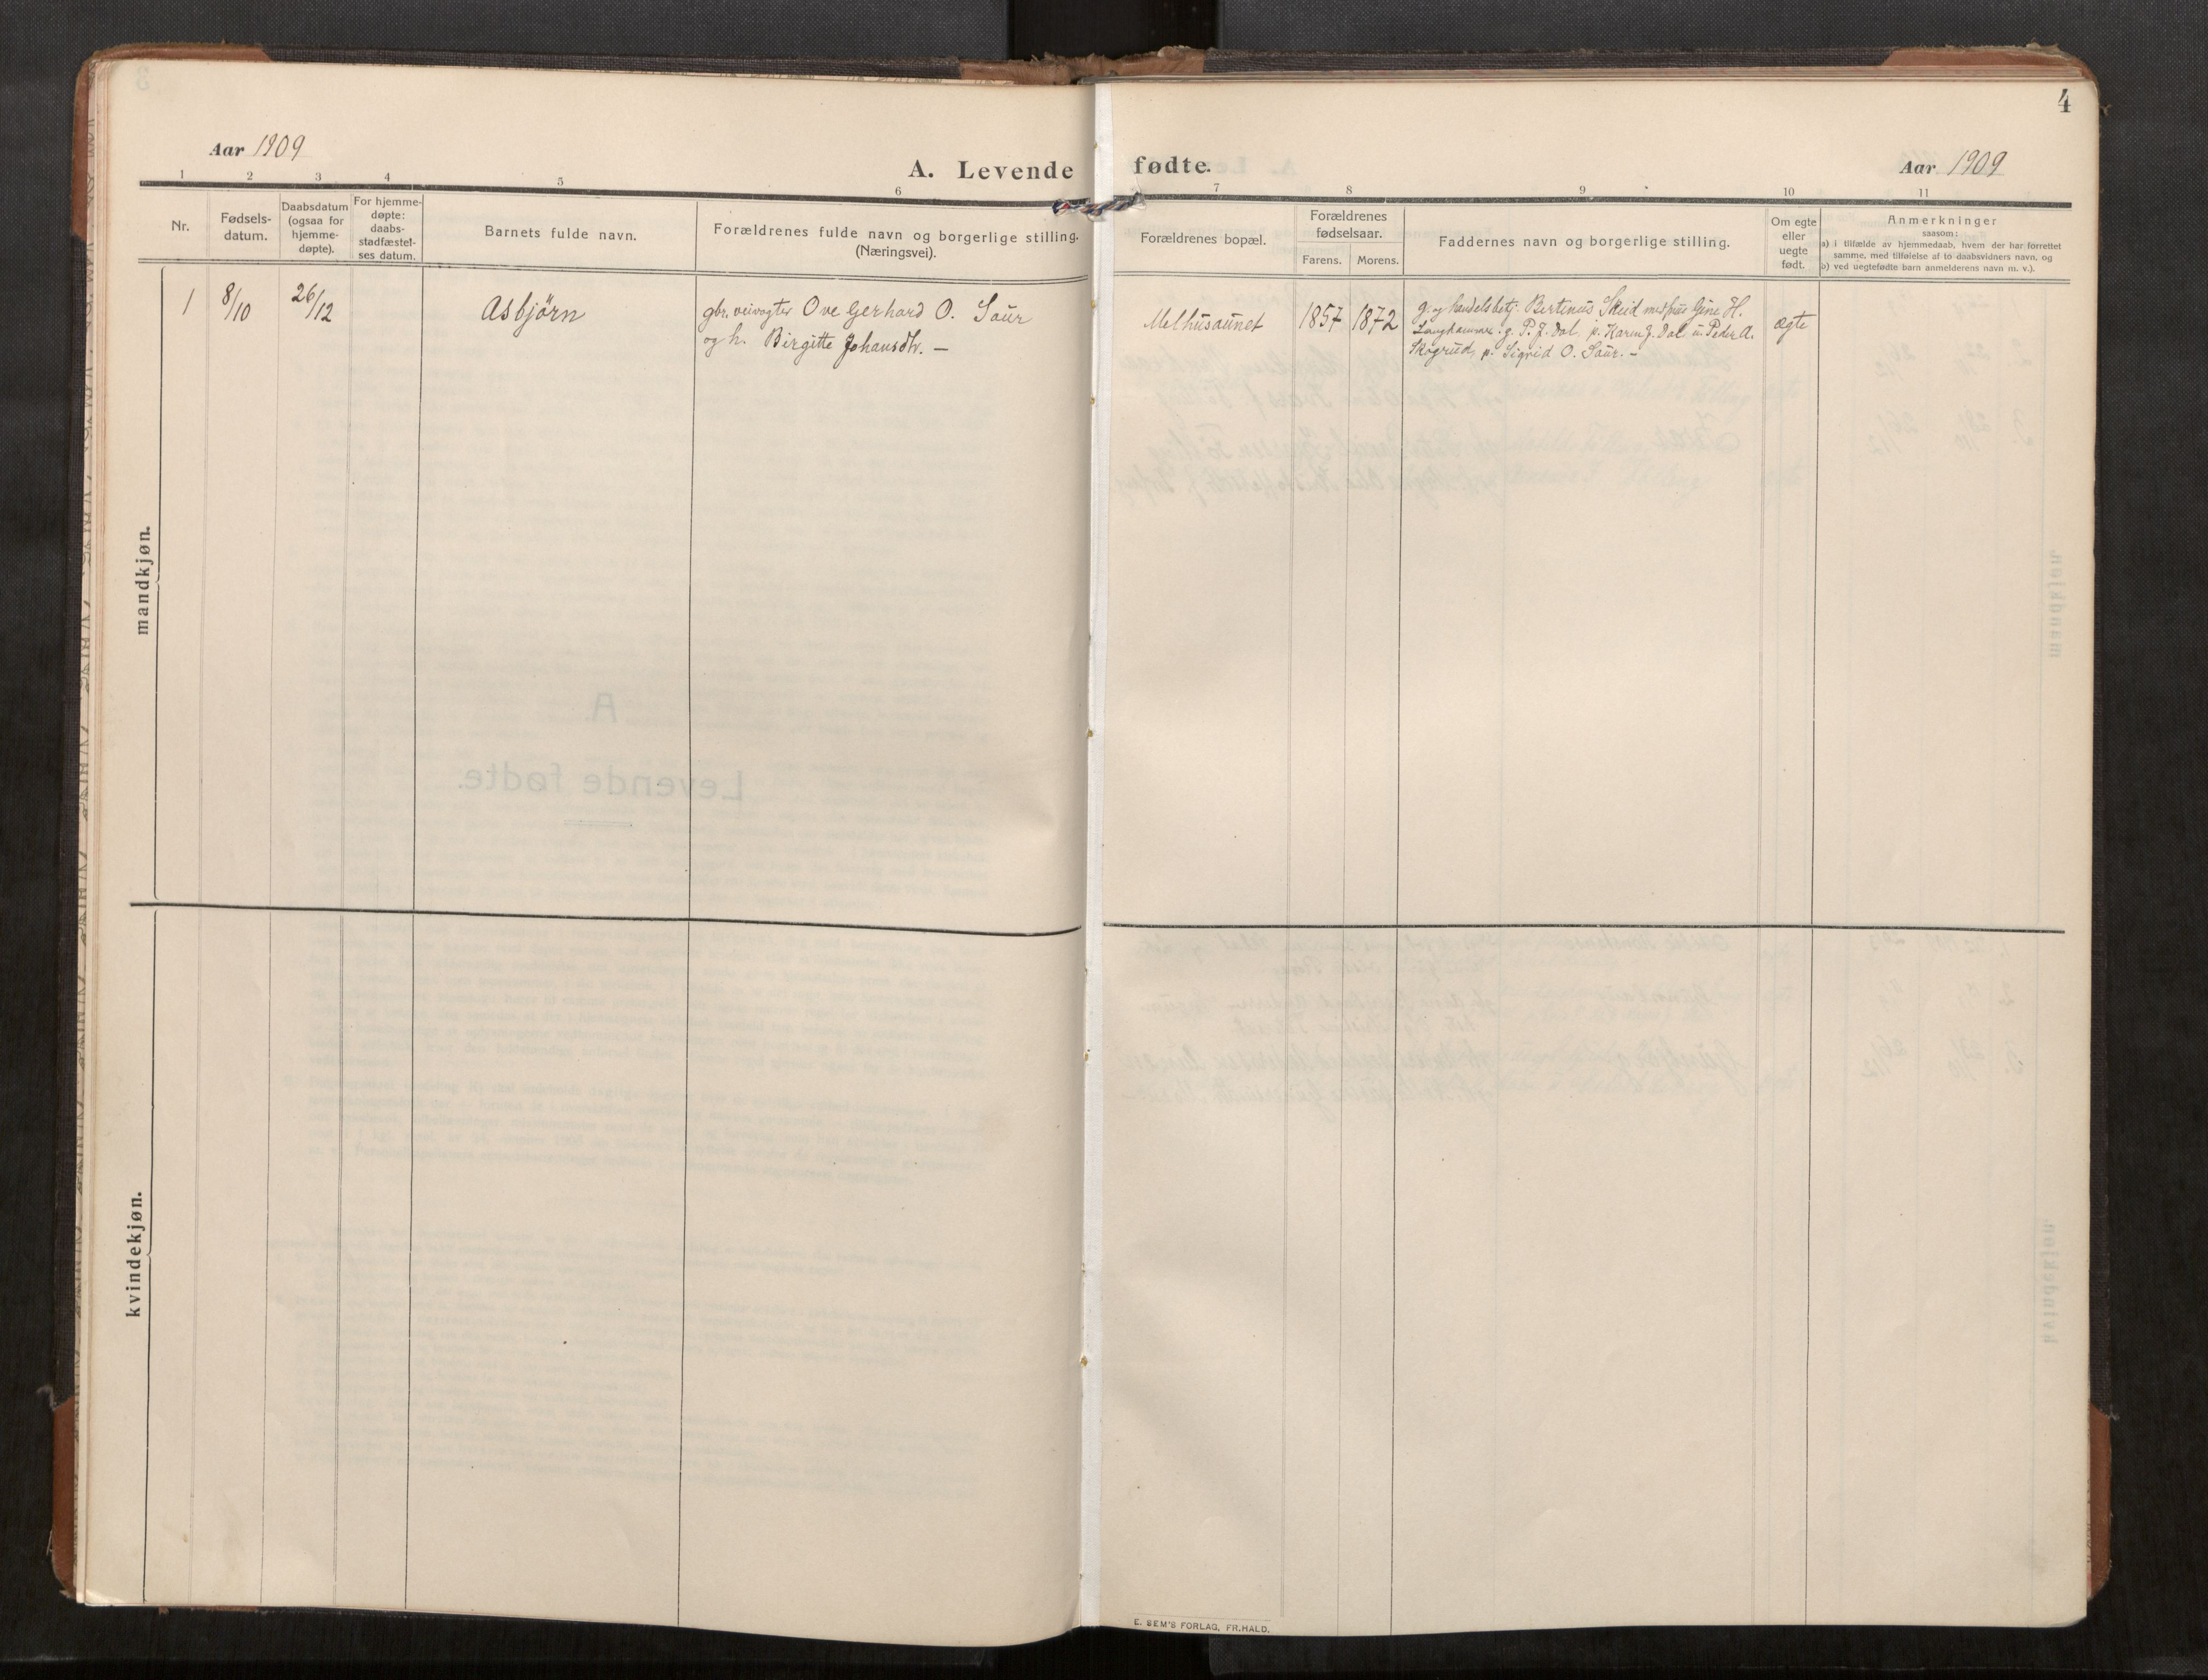 SAT, Stod sokneprestkontor, I/I1/I1a/L0003: Parish register (official) no. 3, 1909-1934, p. 4